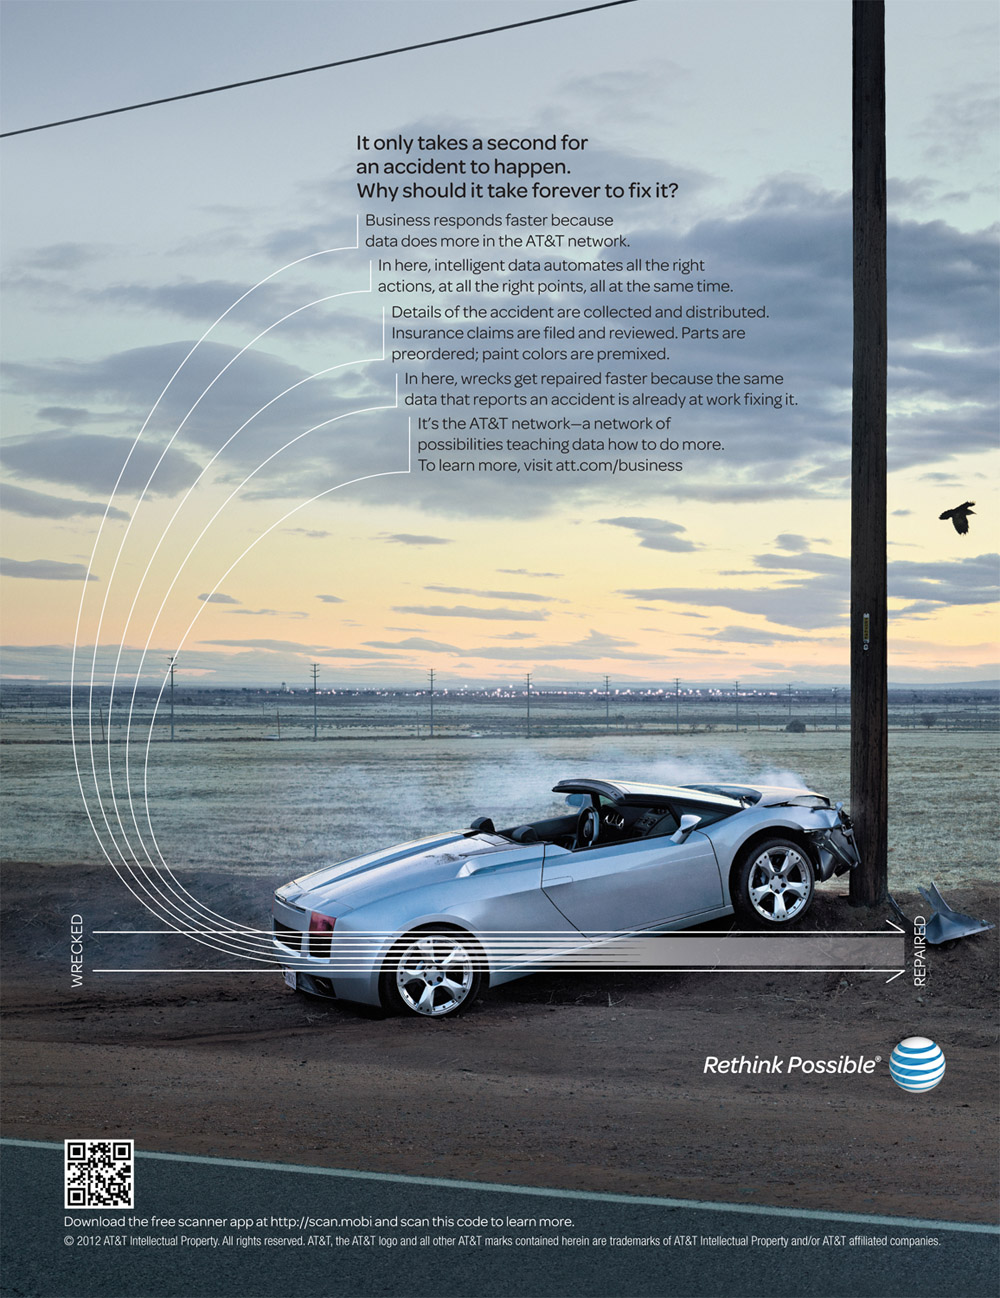 AT&T Enterprise Business